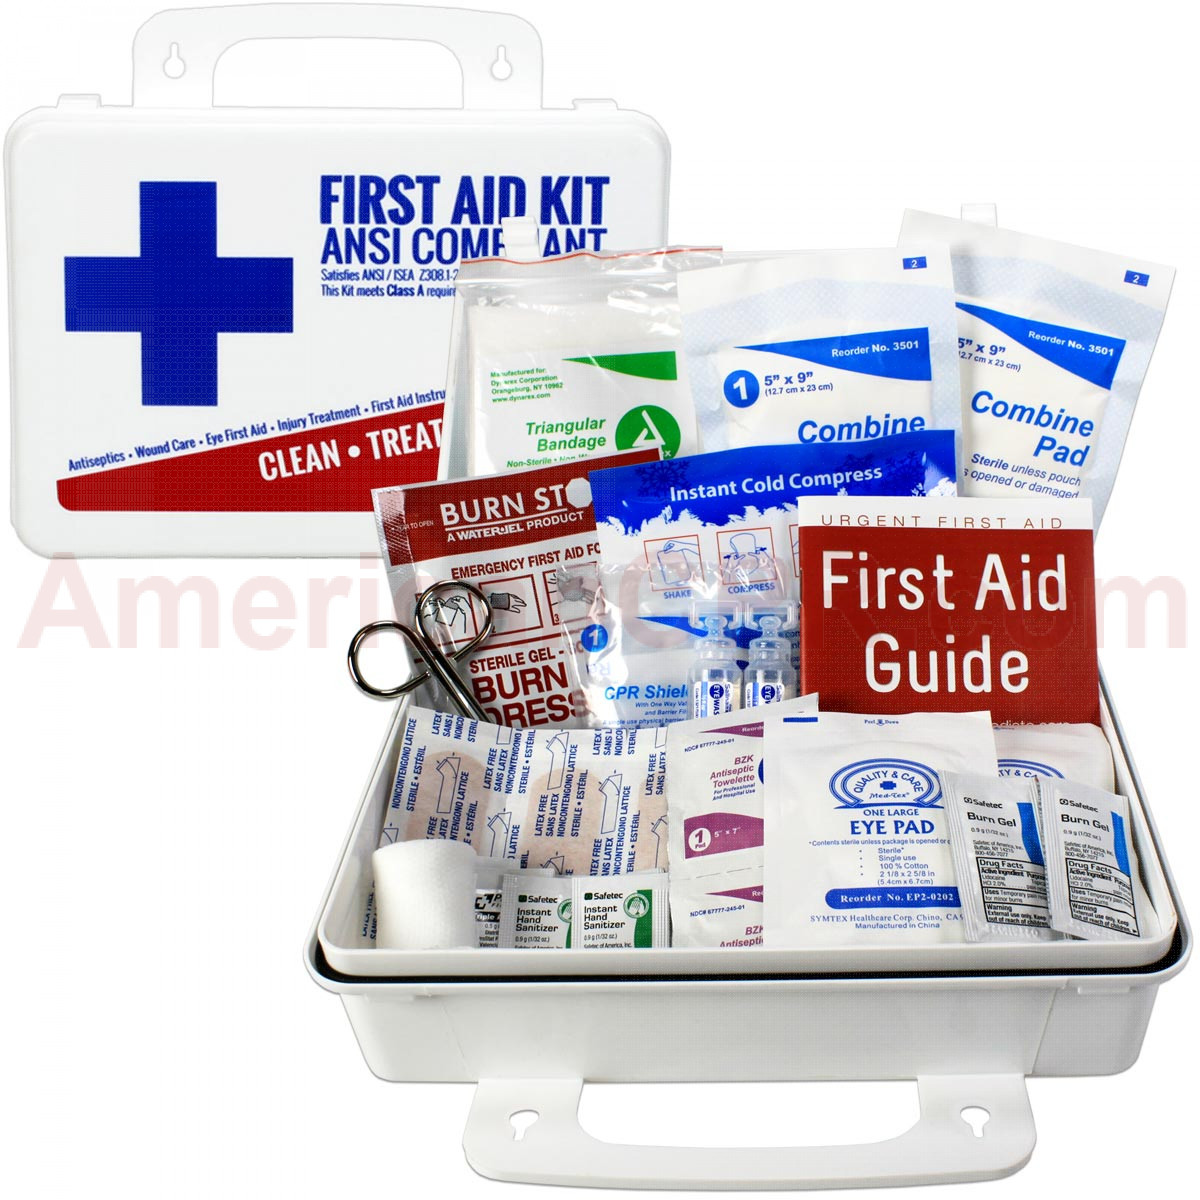 Bulk First Aid Kit, Plastic, 74 Pieces, ANSI A, 25 Person, Urgent First Aid